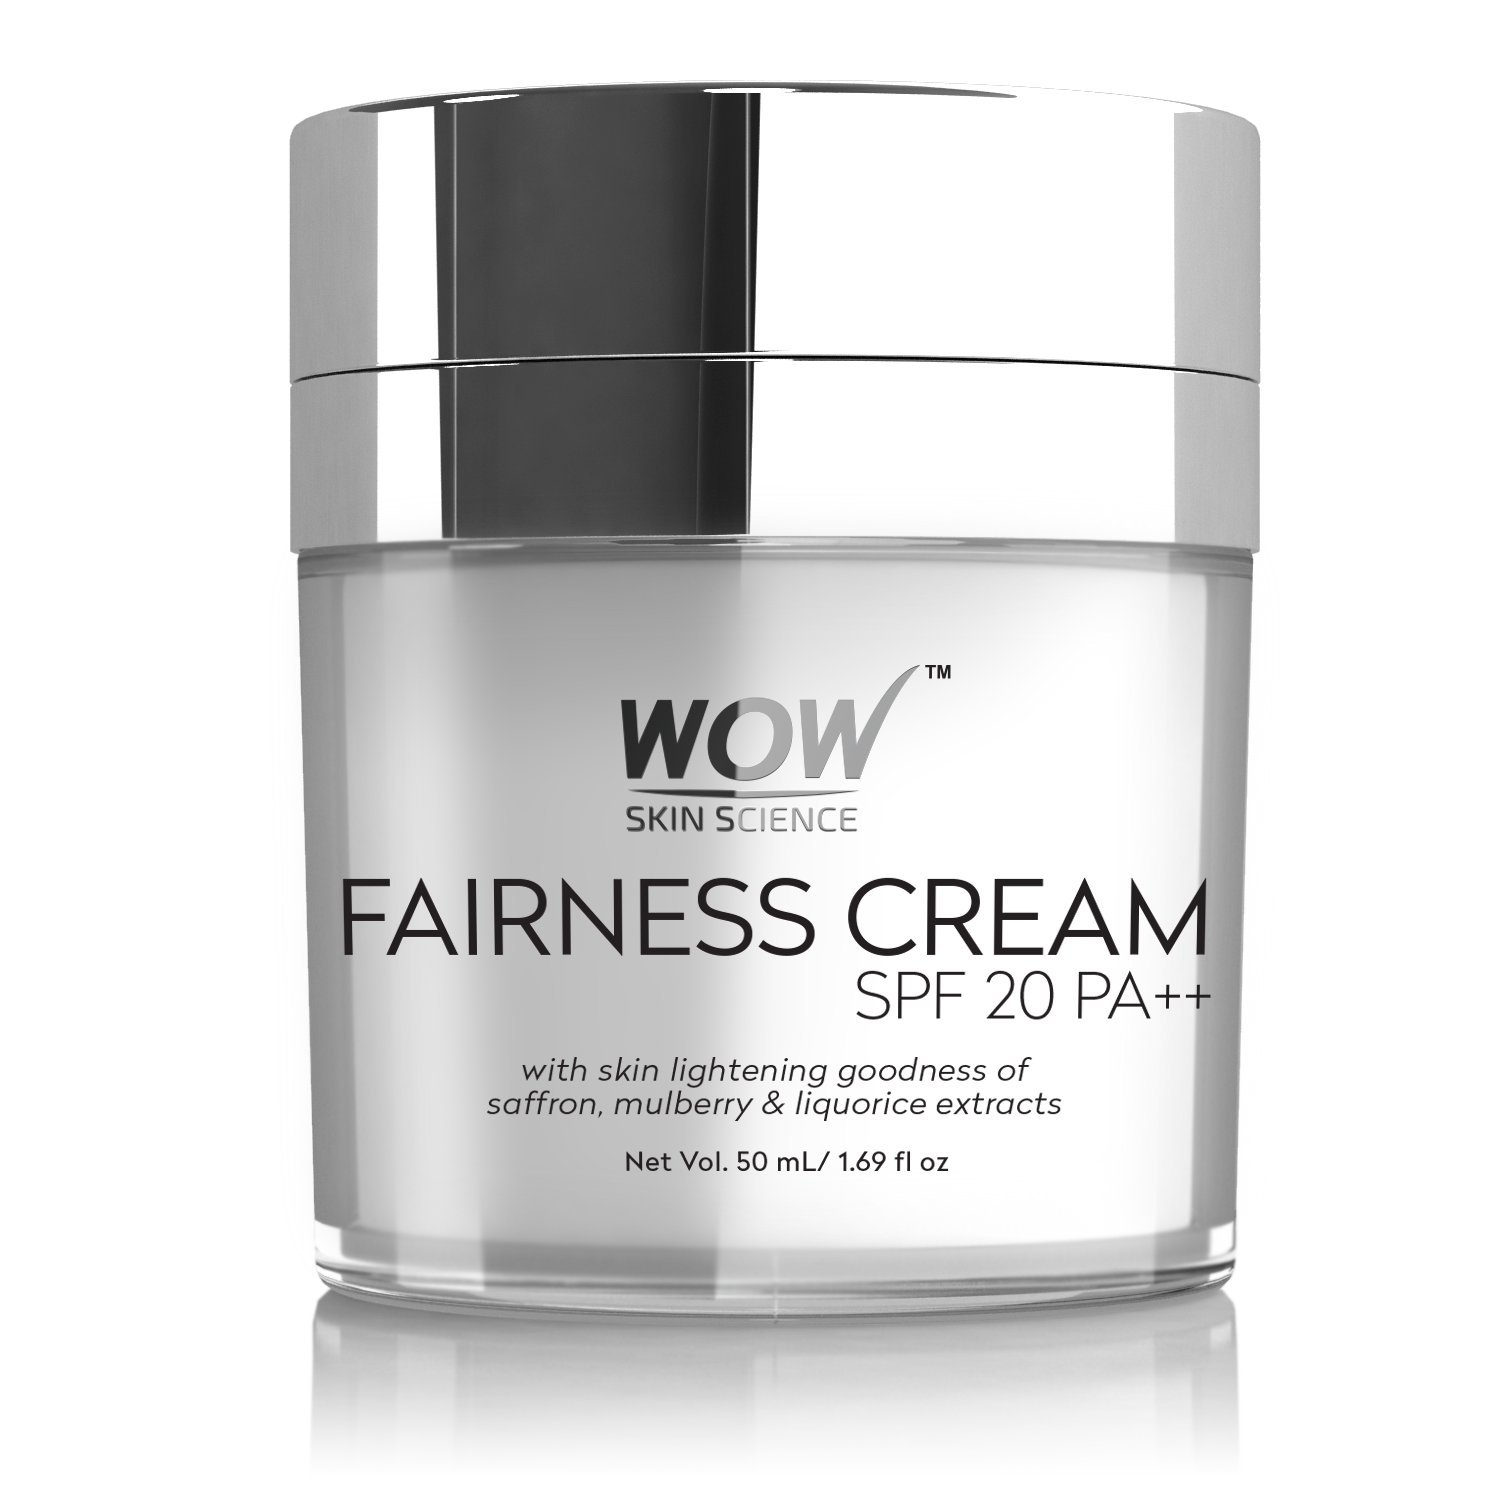 WOW Fairness SPF 20 PA++ Mineral Oil Cream, 50ml